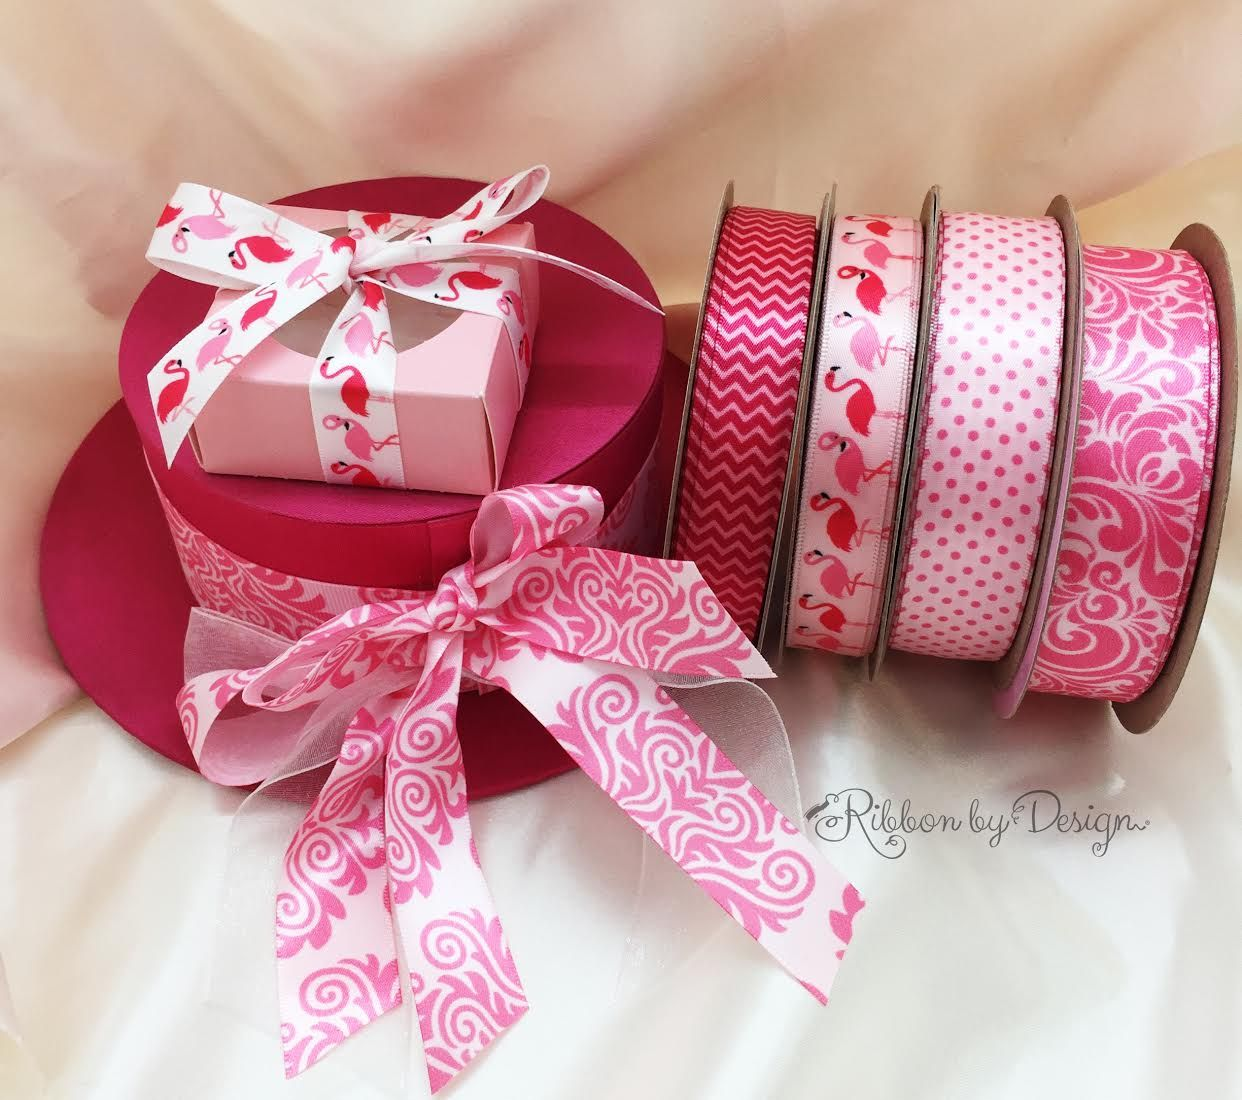 Have a pink themed party? Or are you just a pink lover? Our high quality ribbons feature different shades and patterns of pinks to satisfy your picky eyes and needs for different purposes.